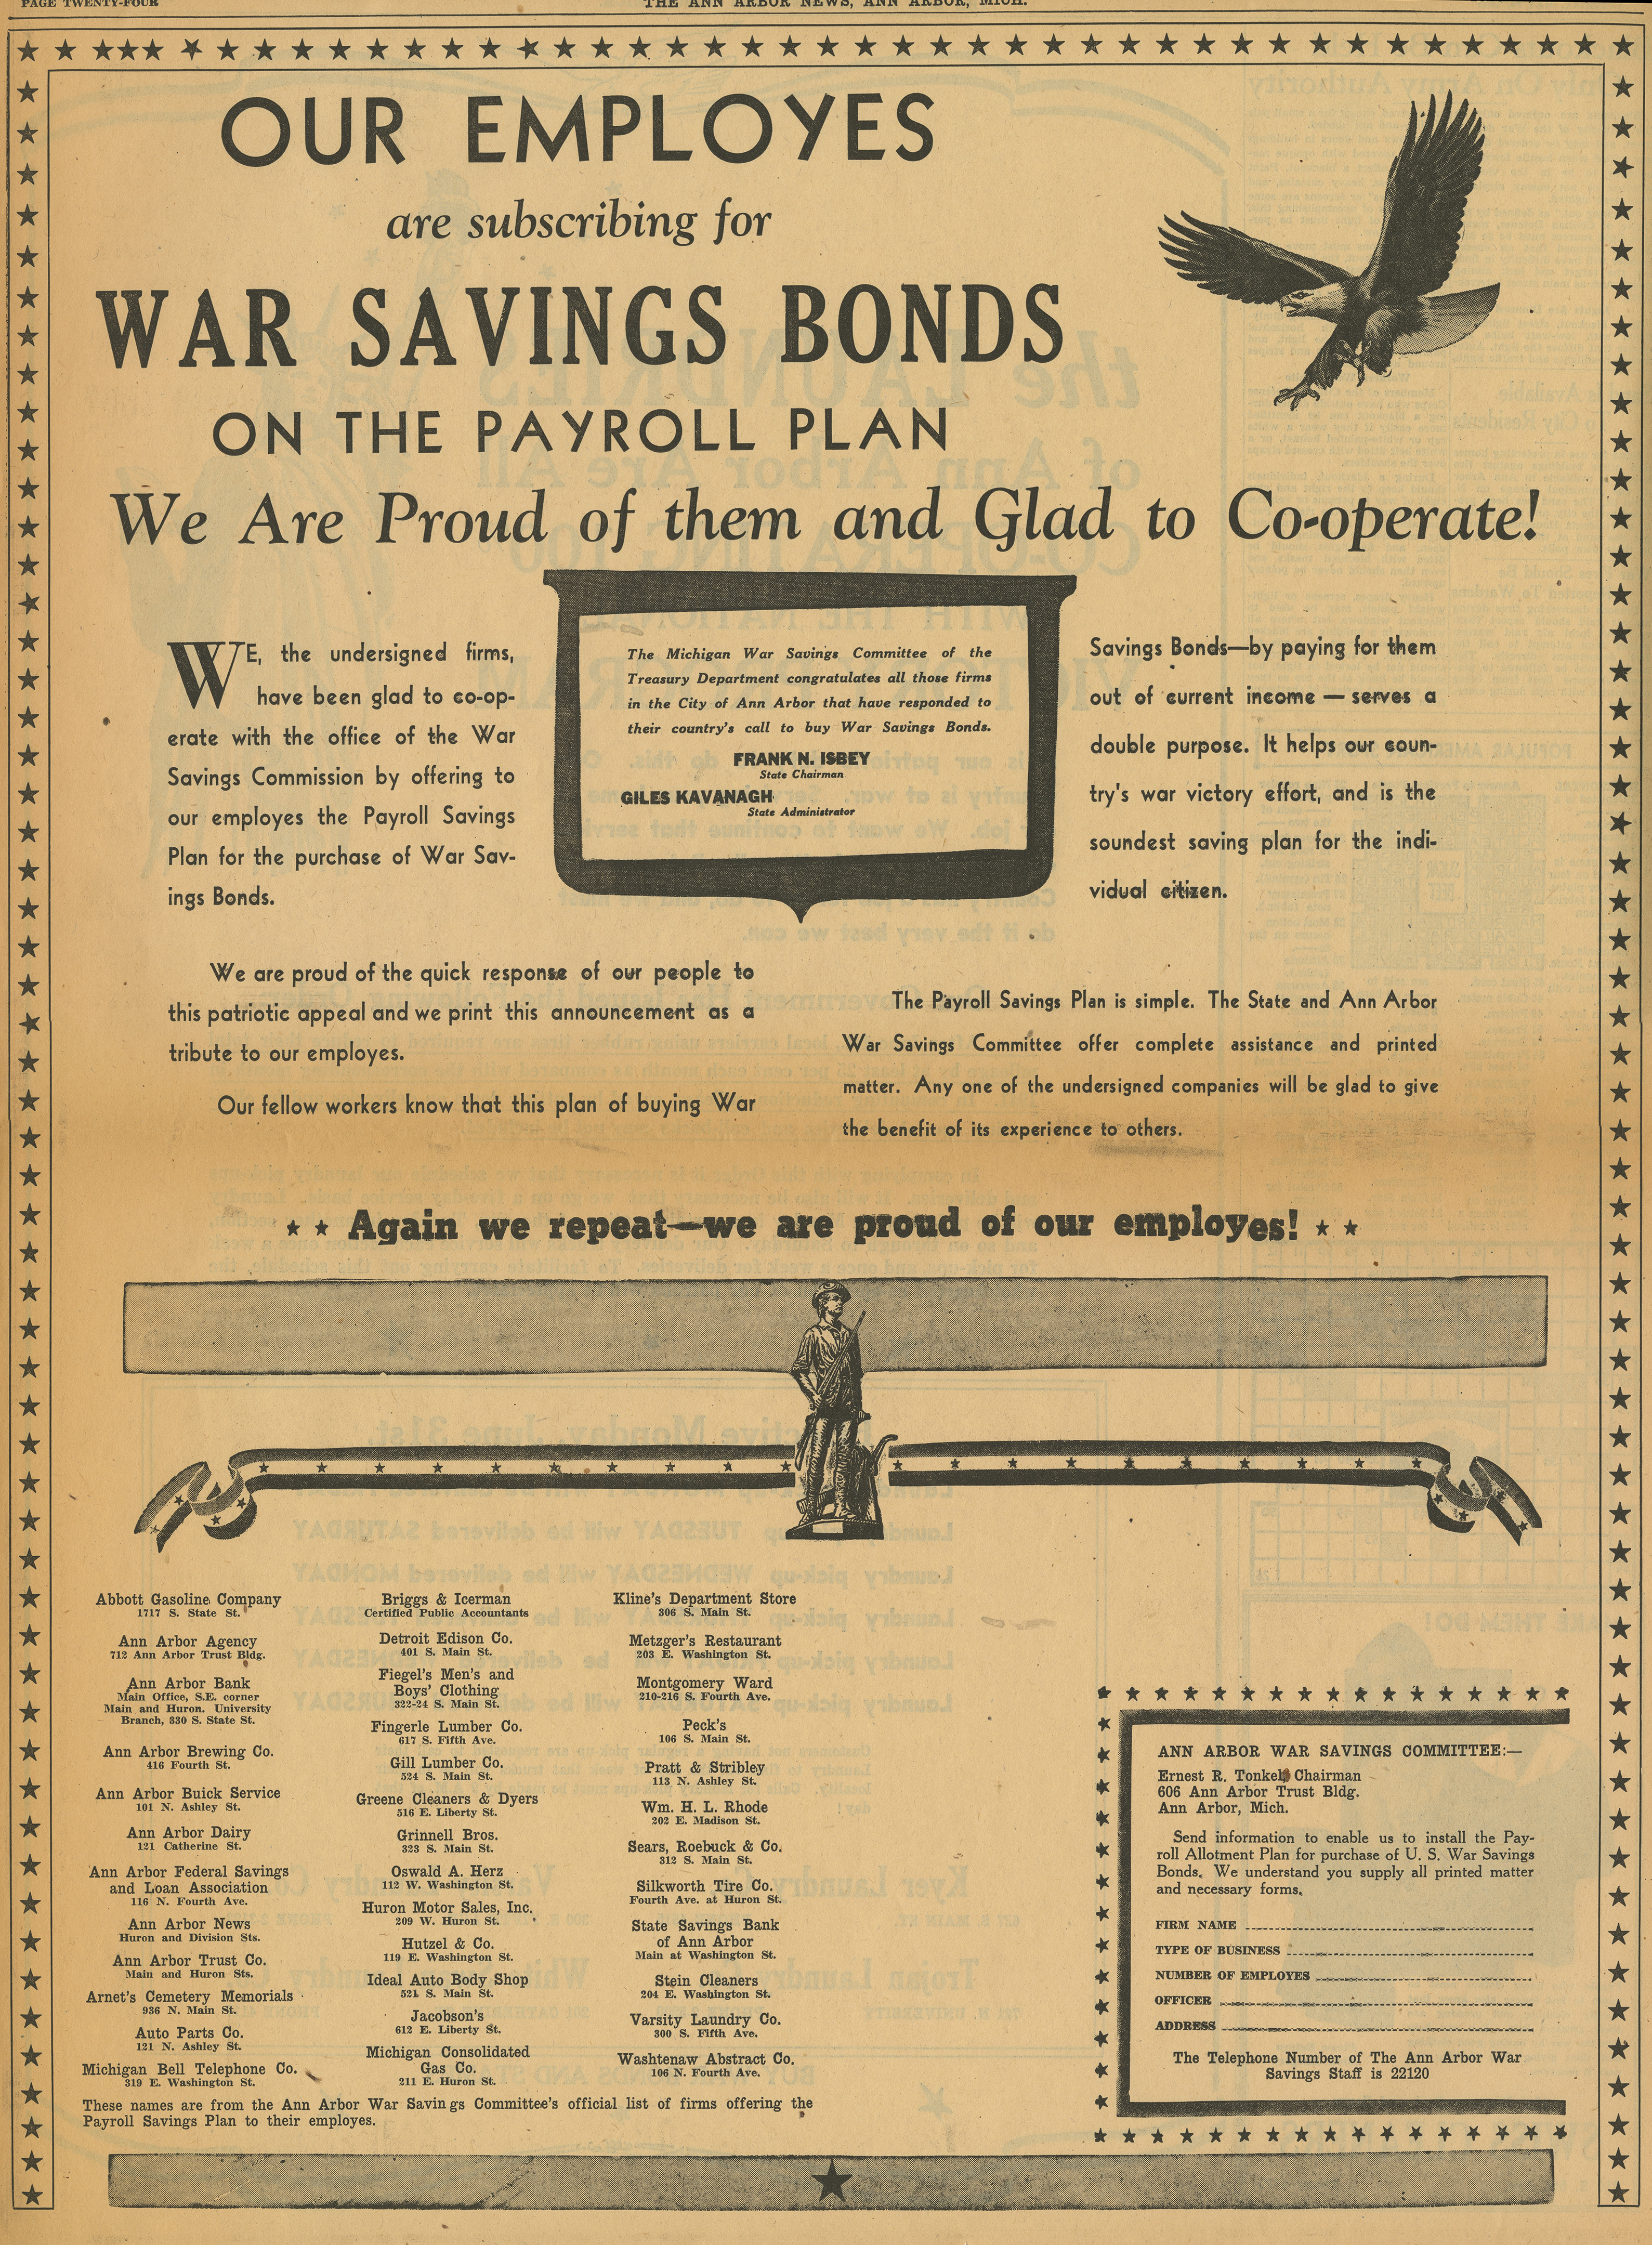 Ann Arbor War Savings Committee [advertisement] image